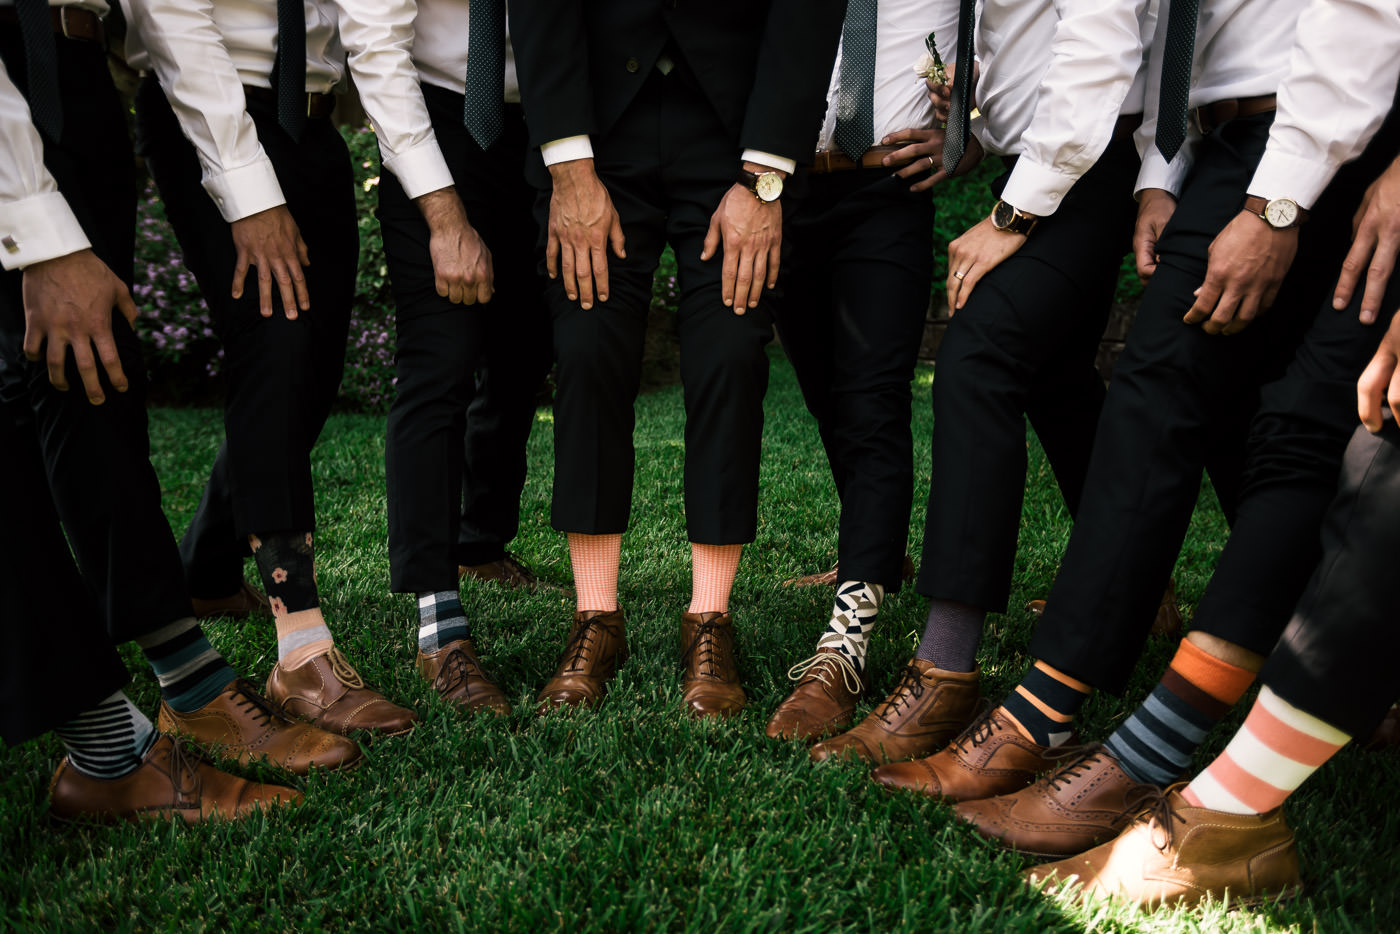 Groom and his groomsmen show off their crazy socks and stylish shows captured by a Temecula wedding photographer.